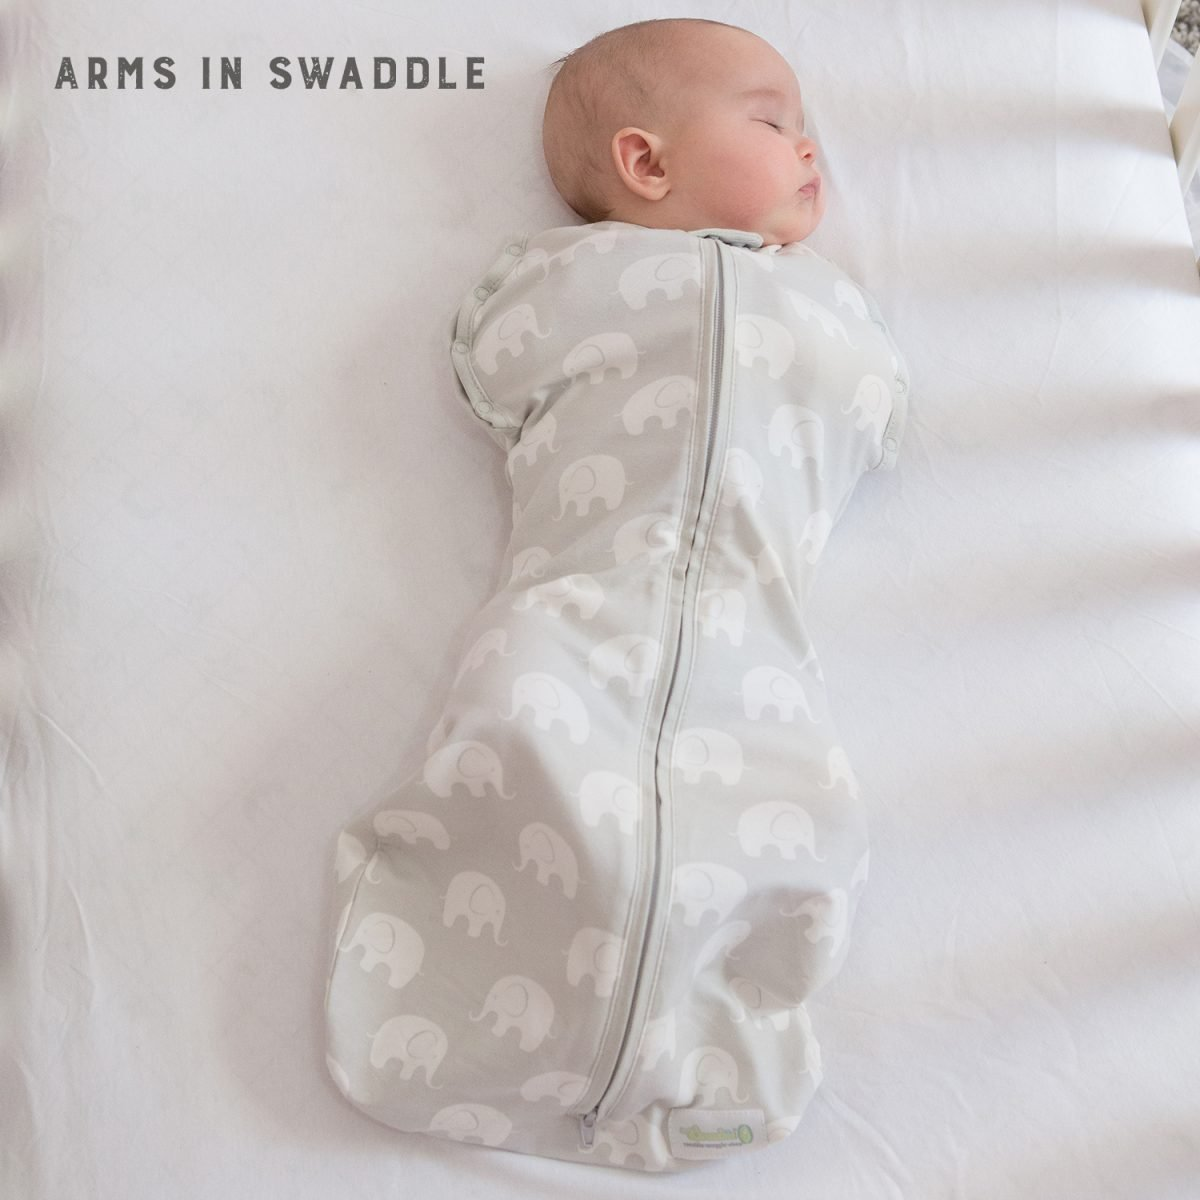 Woombie Hybrid 4-in-1 Swaddle with Soothers, 6 Months Plus, Grey Elephant Print Best For Baby 01043